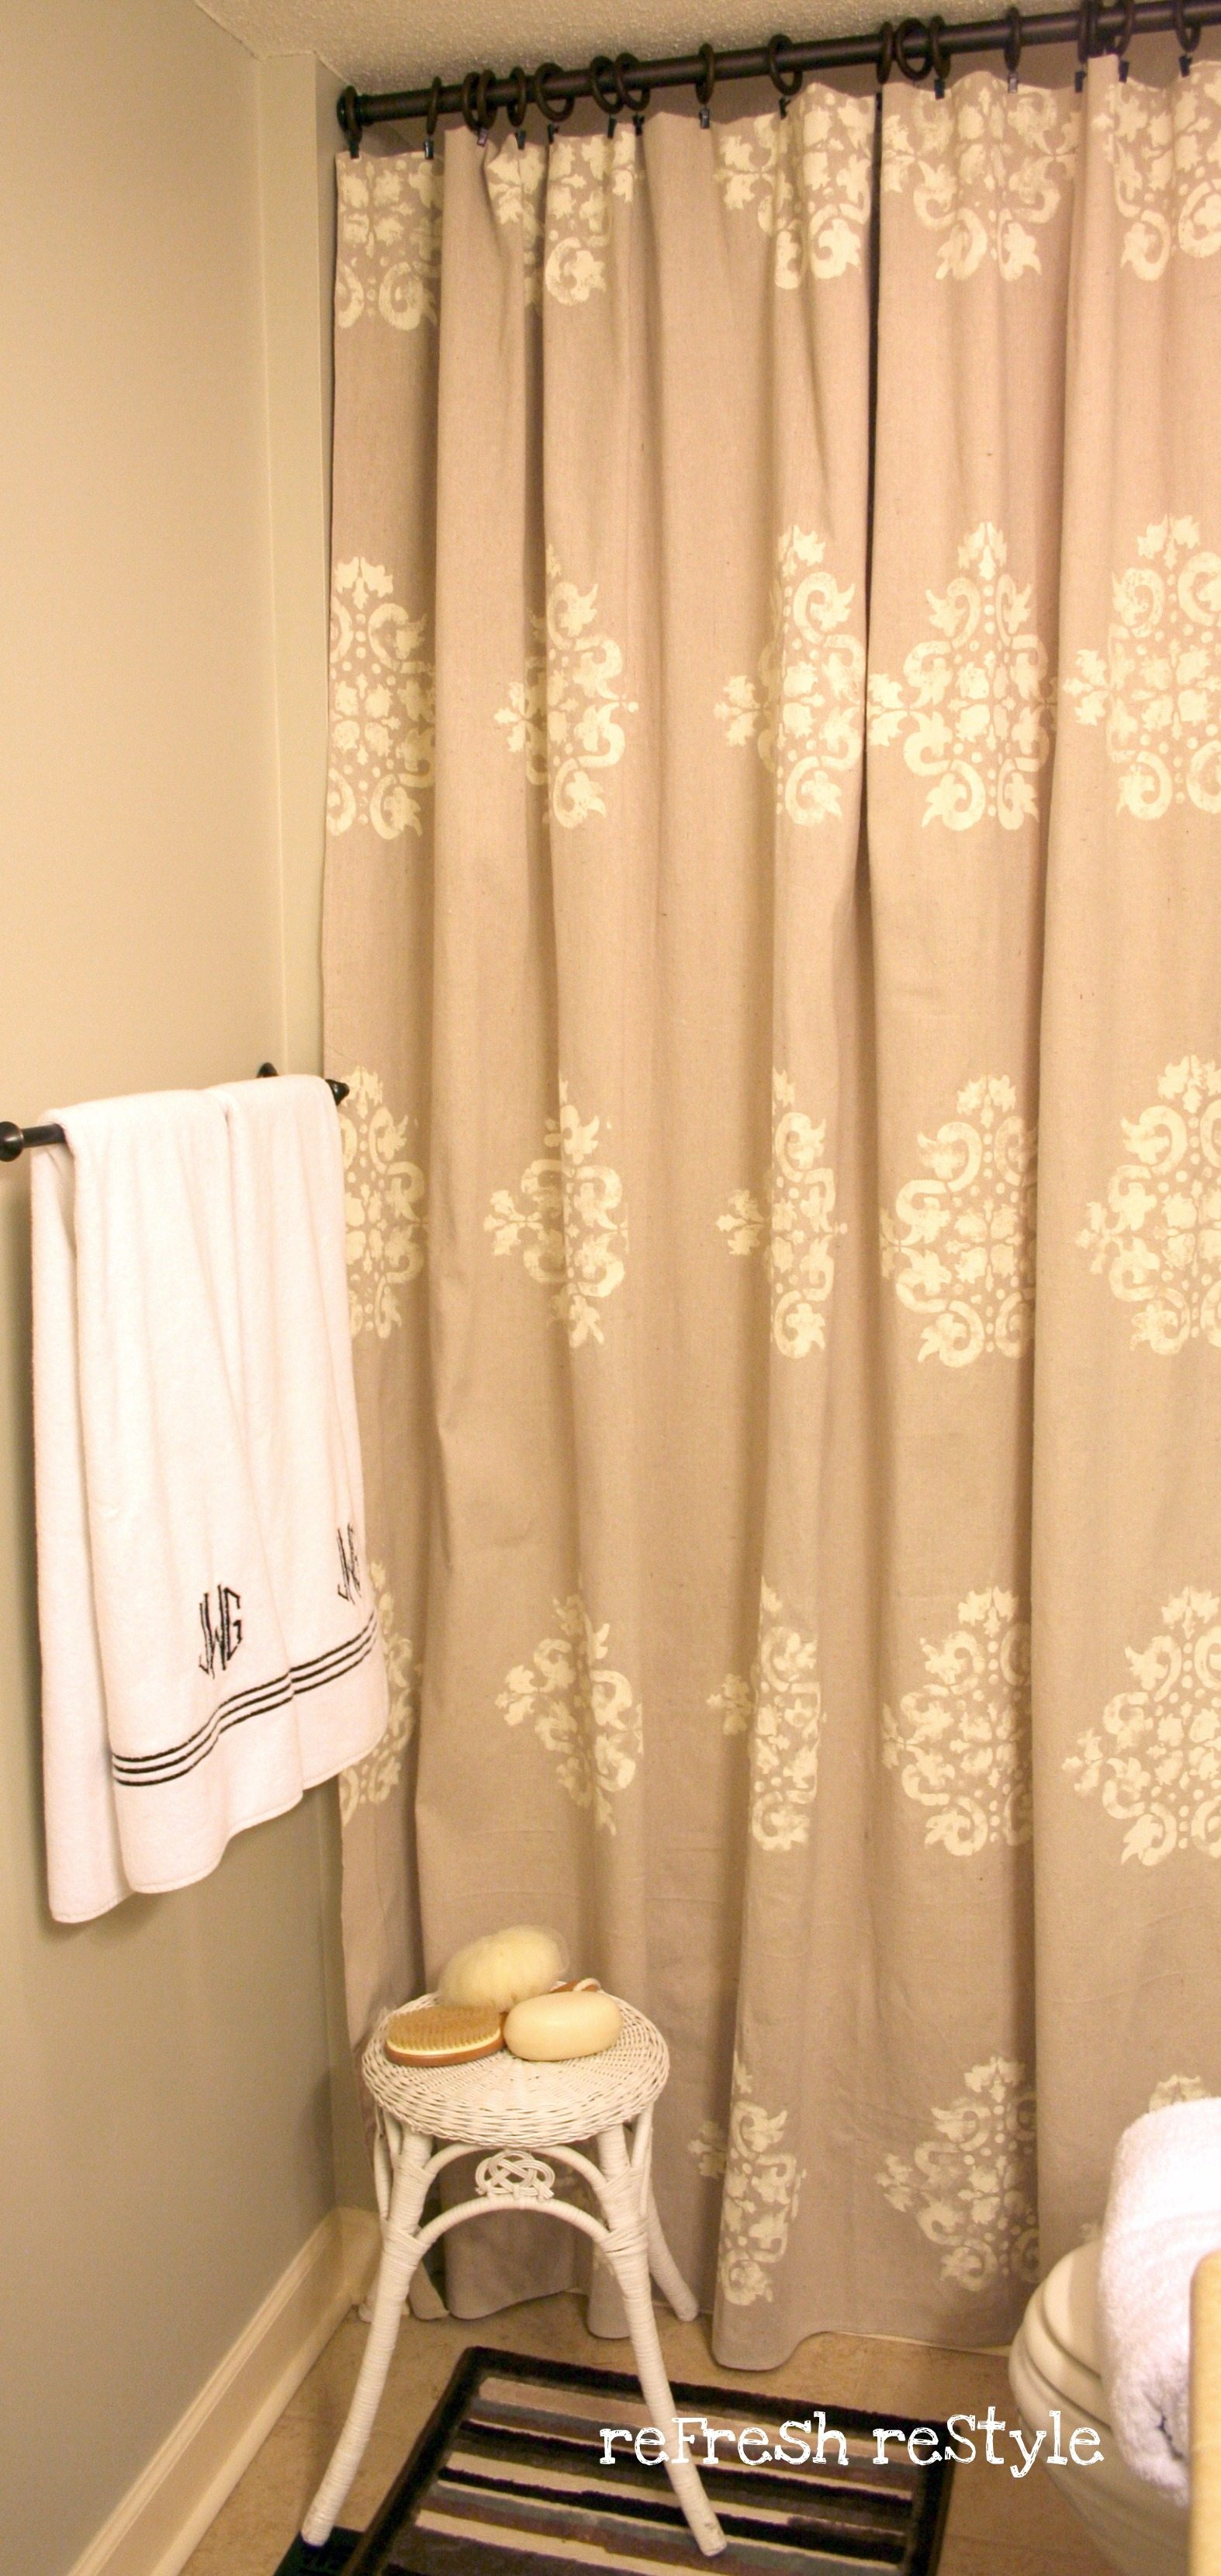 How To Paint A Shower Curtain Made From Drop Cloth